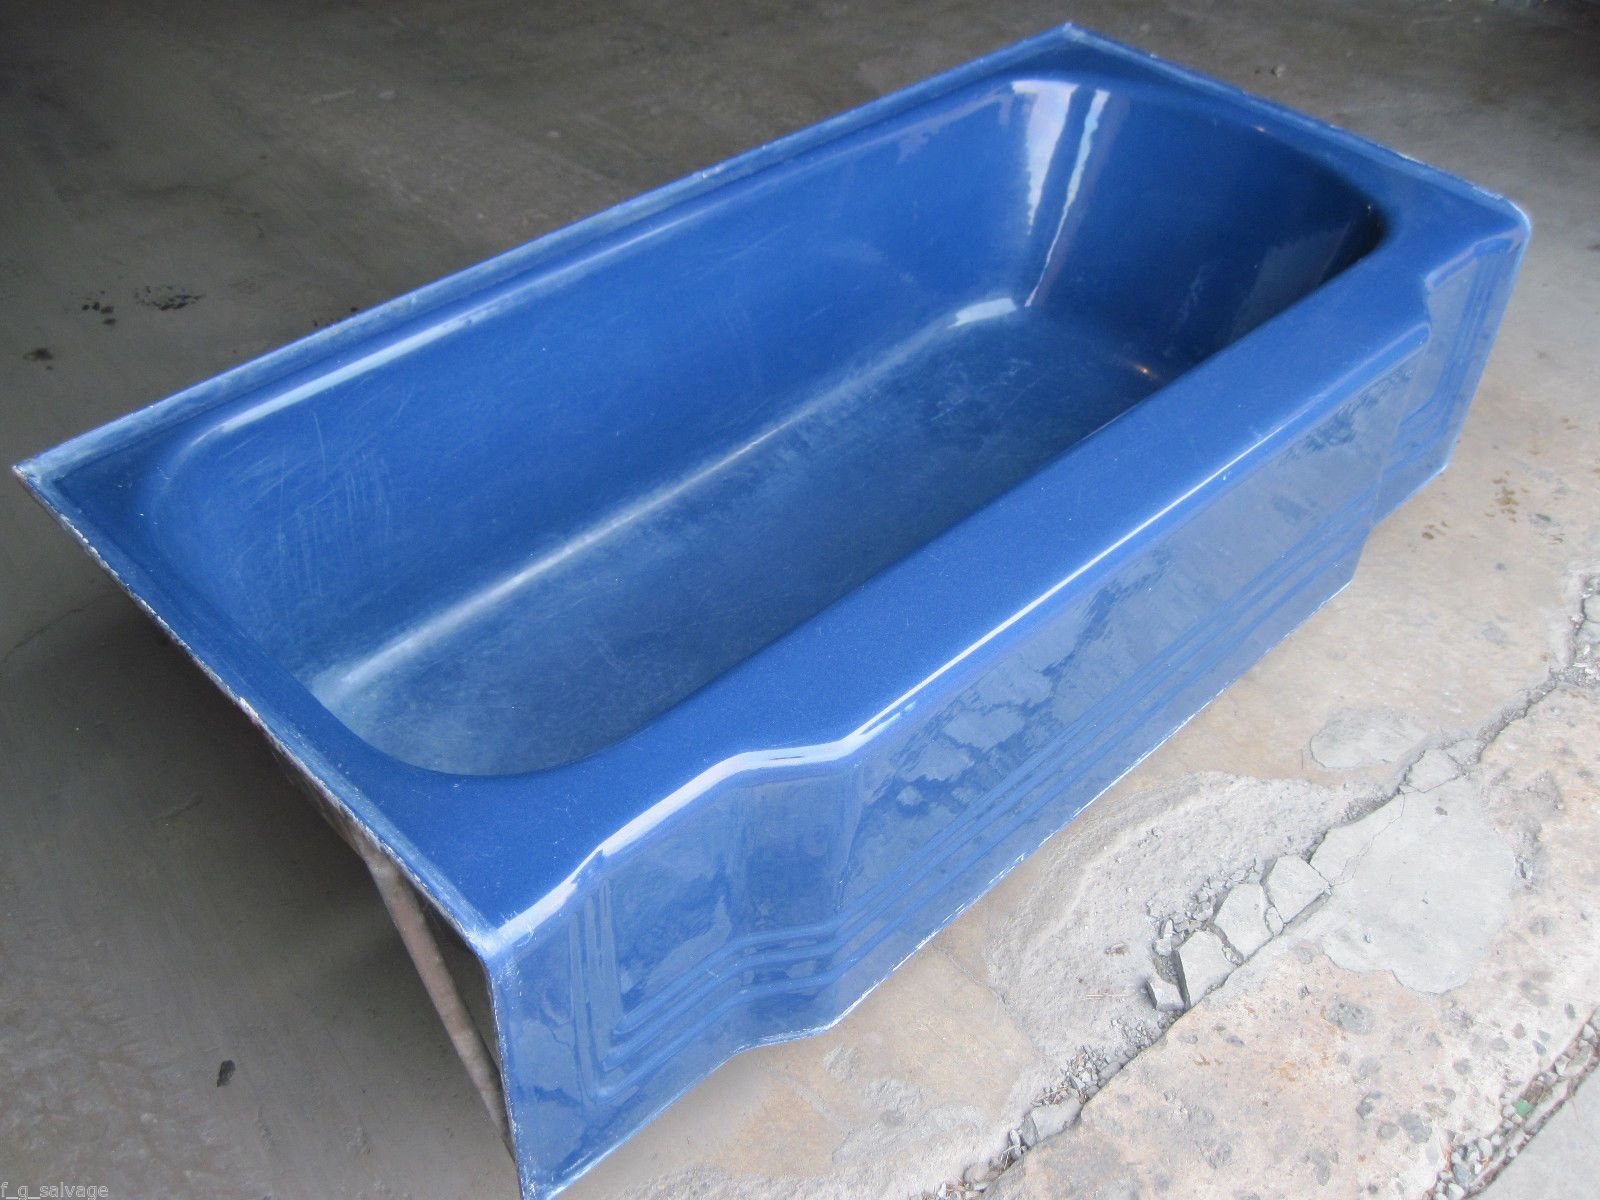 Antique Vintage American Standard Pembroke Navy Blue Bathtub 66 ...